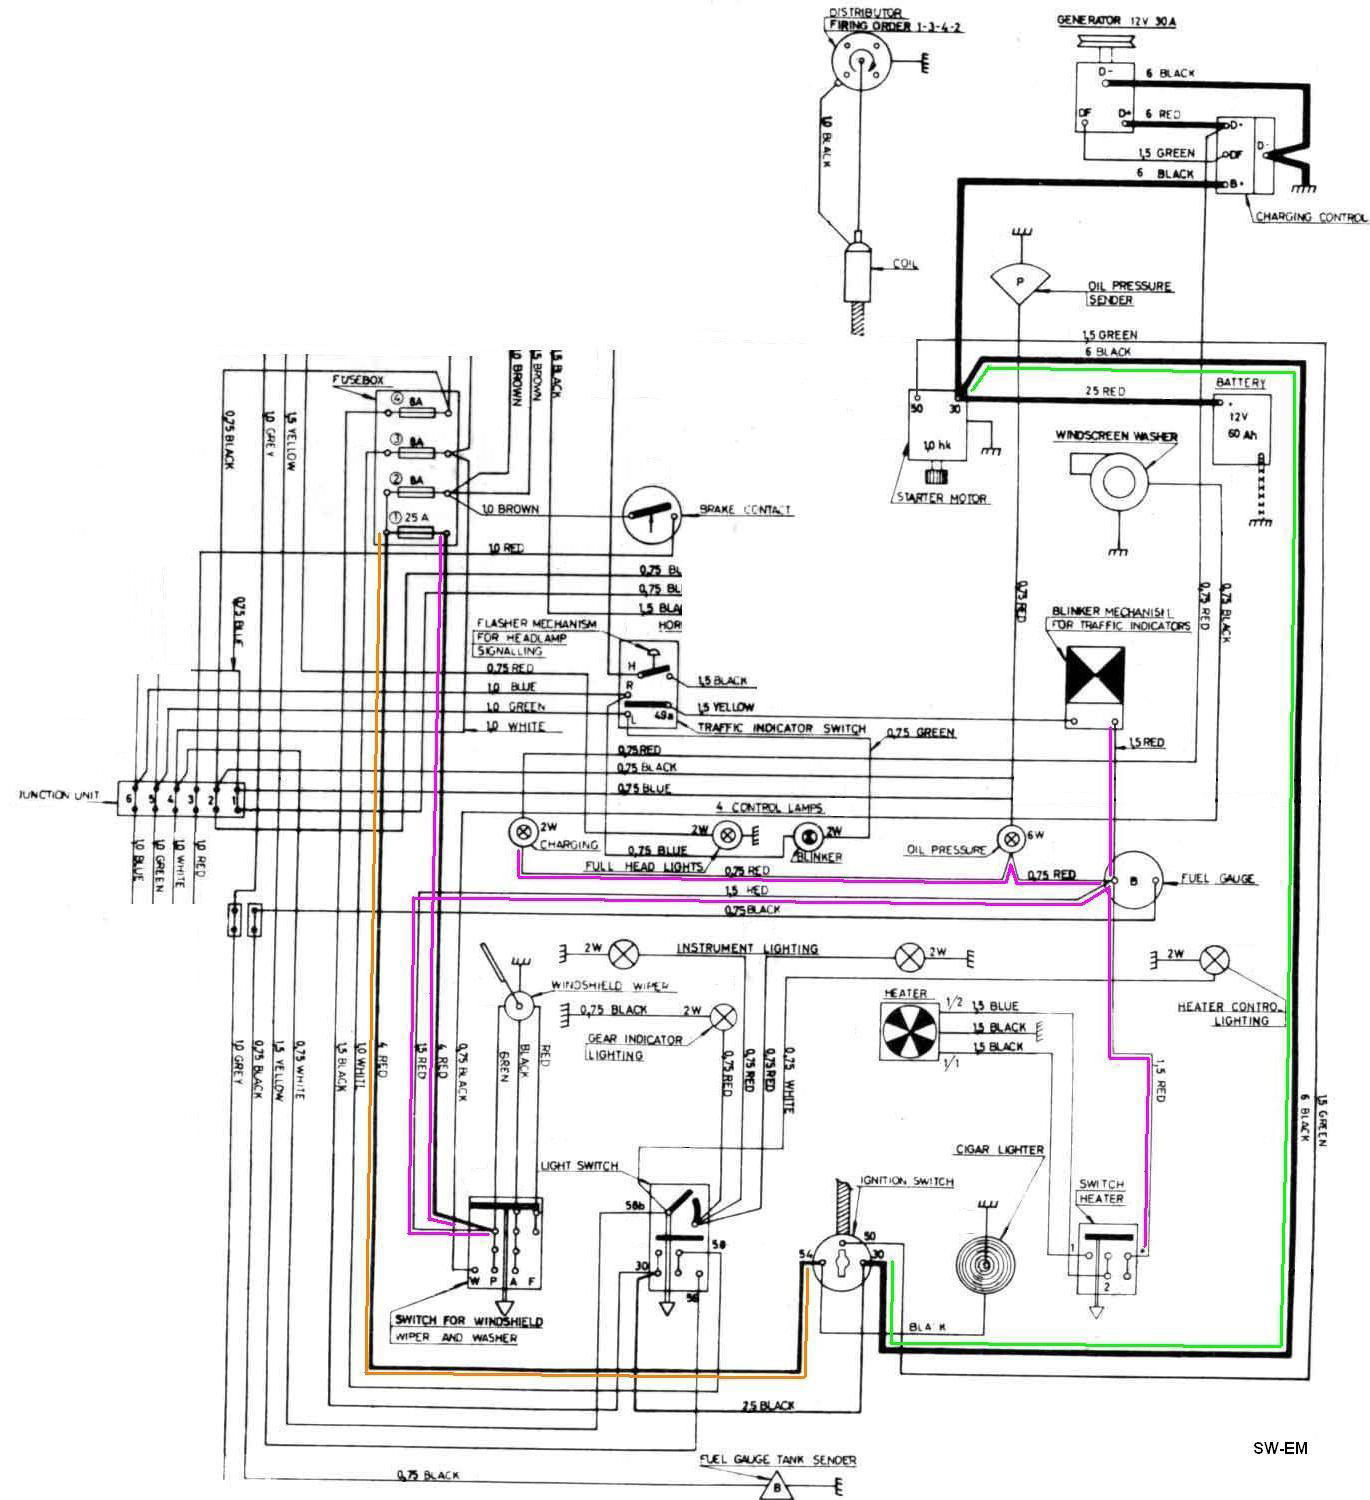 IGN SW wiring diag 122 markup 1800 ignition wiring swedish vs british design 1991 volvo 940 wiring diagram at gsmx.co